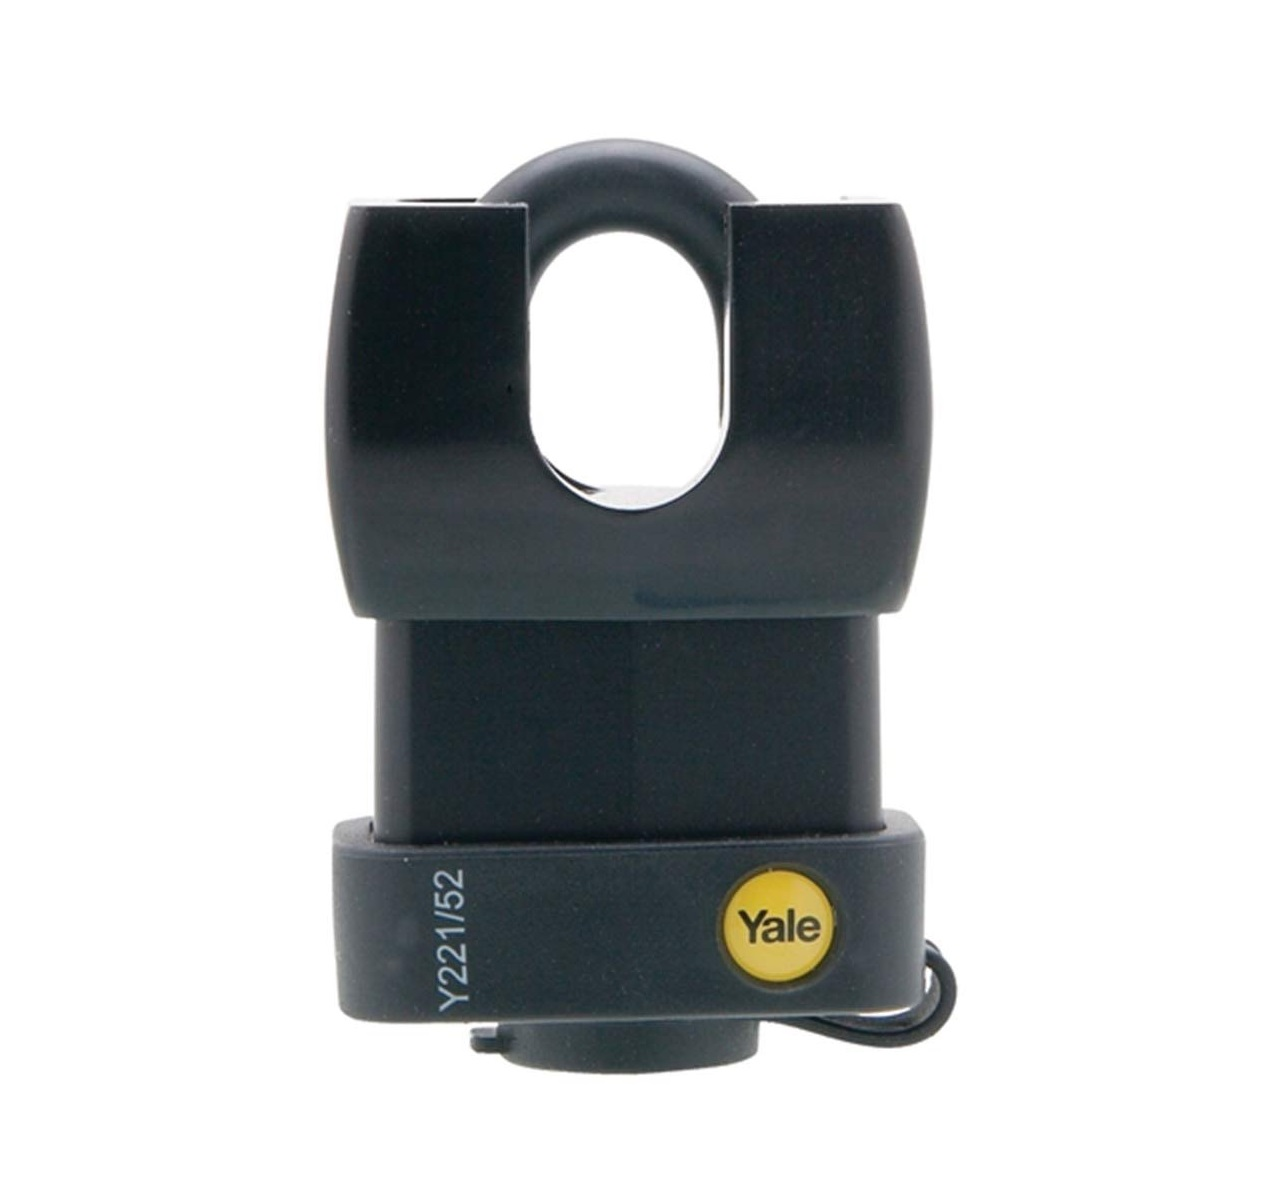 Yale Y221/52/125/1 52MM Weather Resistant Laminated Steel Padlock Comes With 3 Keys